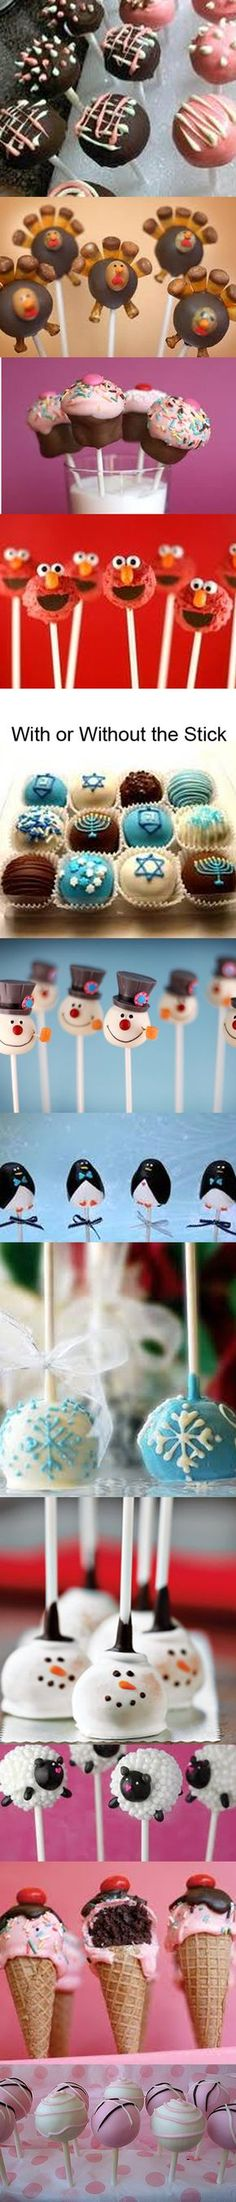 Fun & Easy Cake Pops - Robin Sampson's Blog : Robin Sampson's Blog